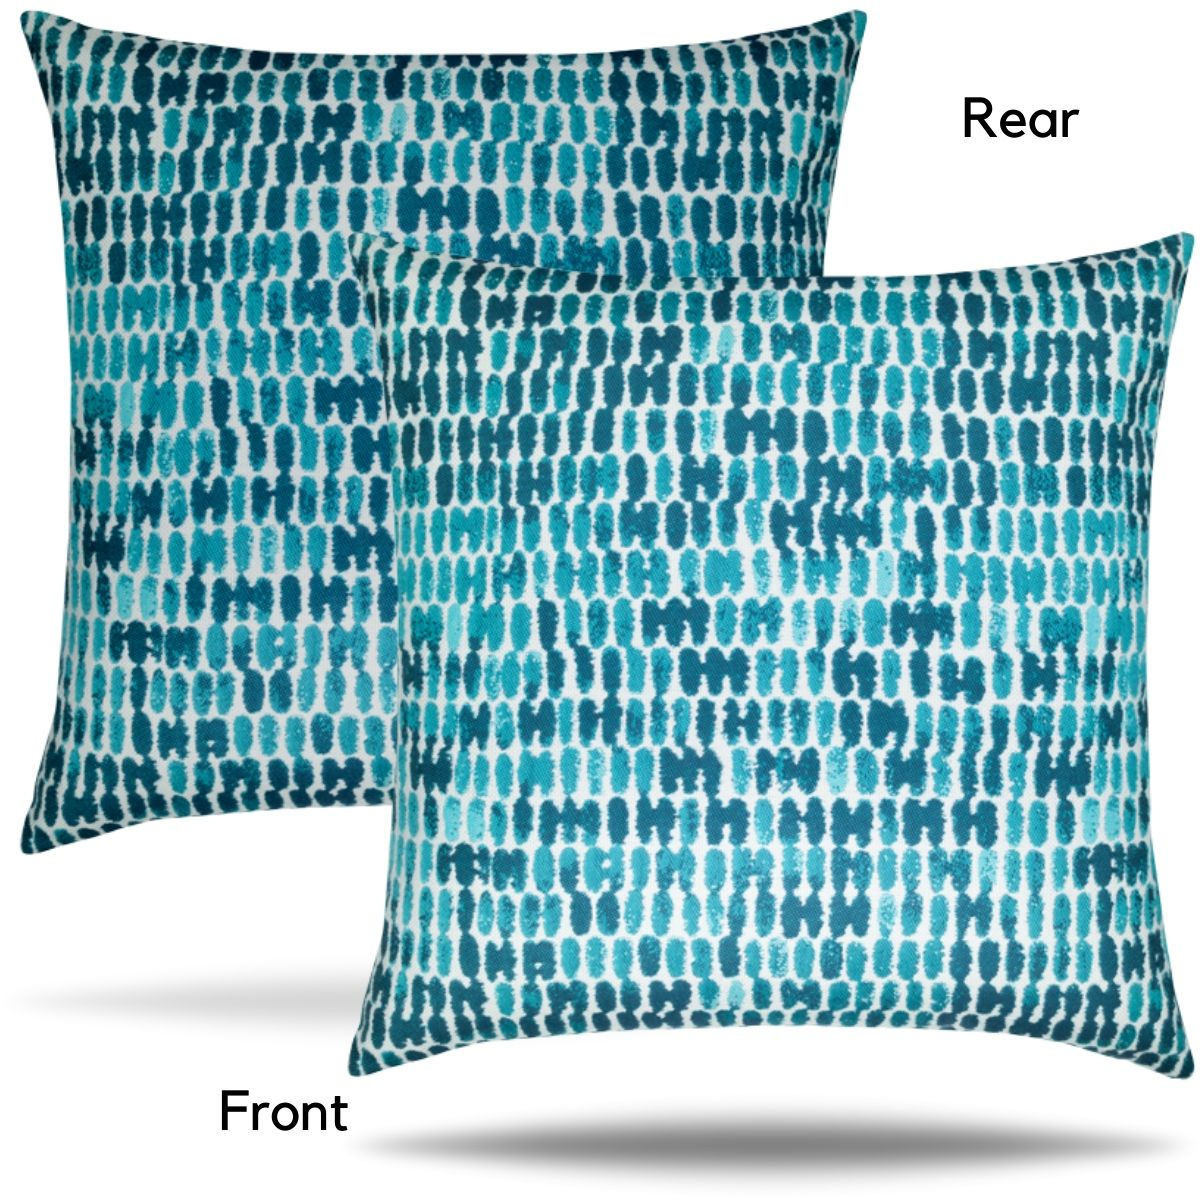 thumbprint-aruba-pillow-both sides